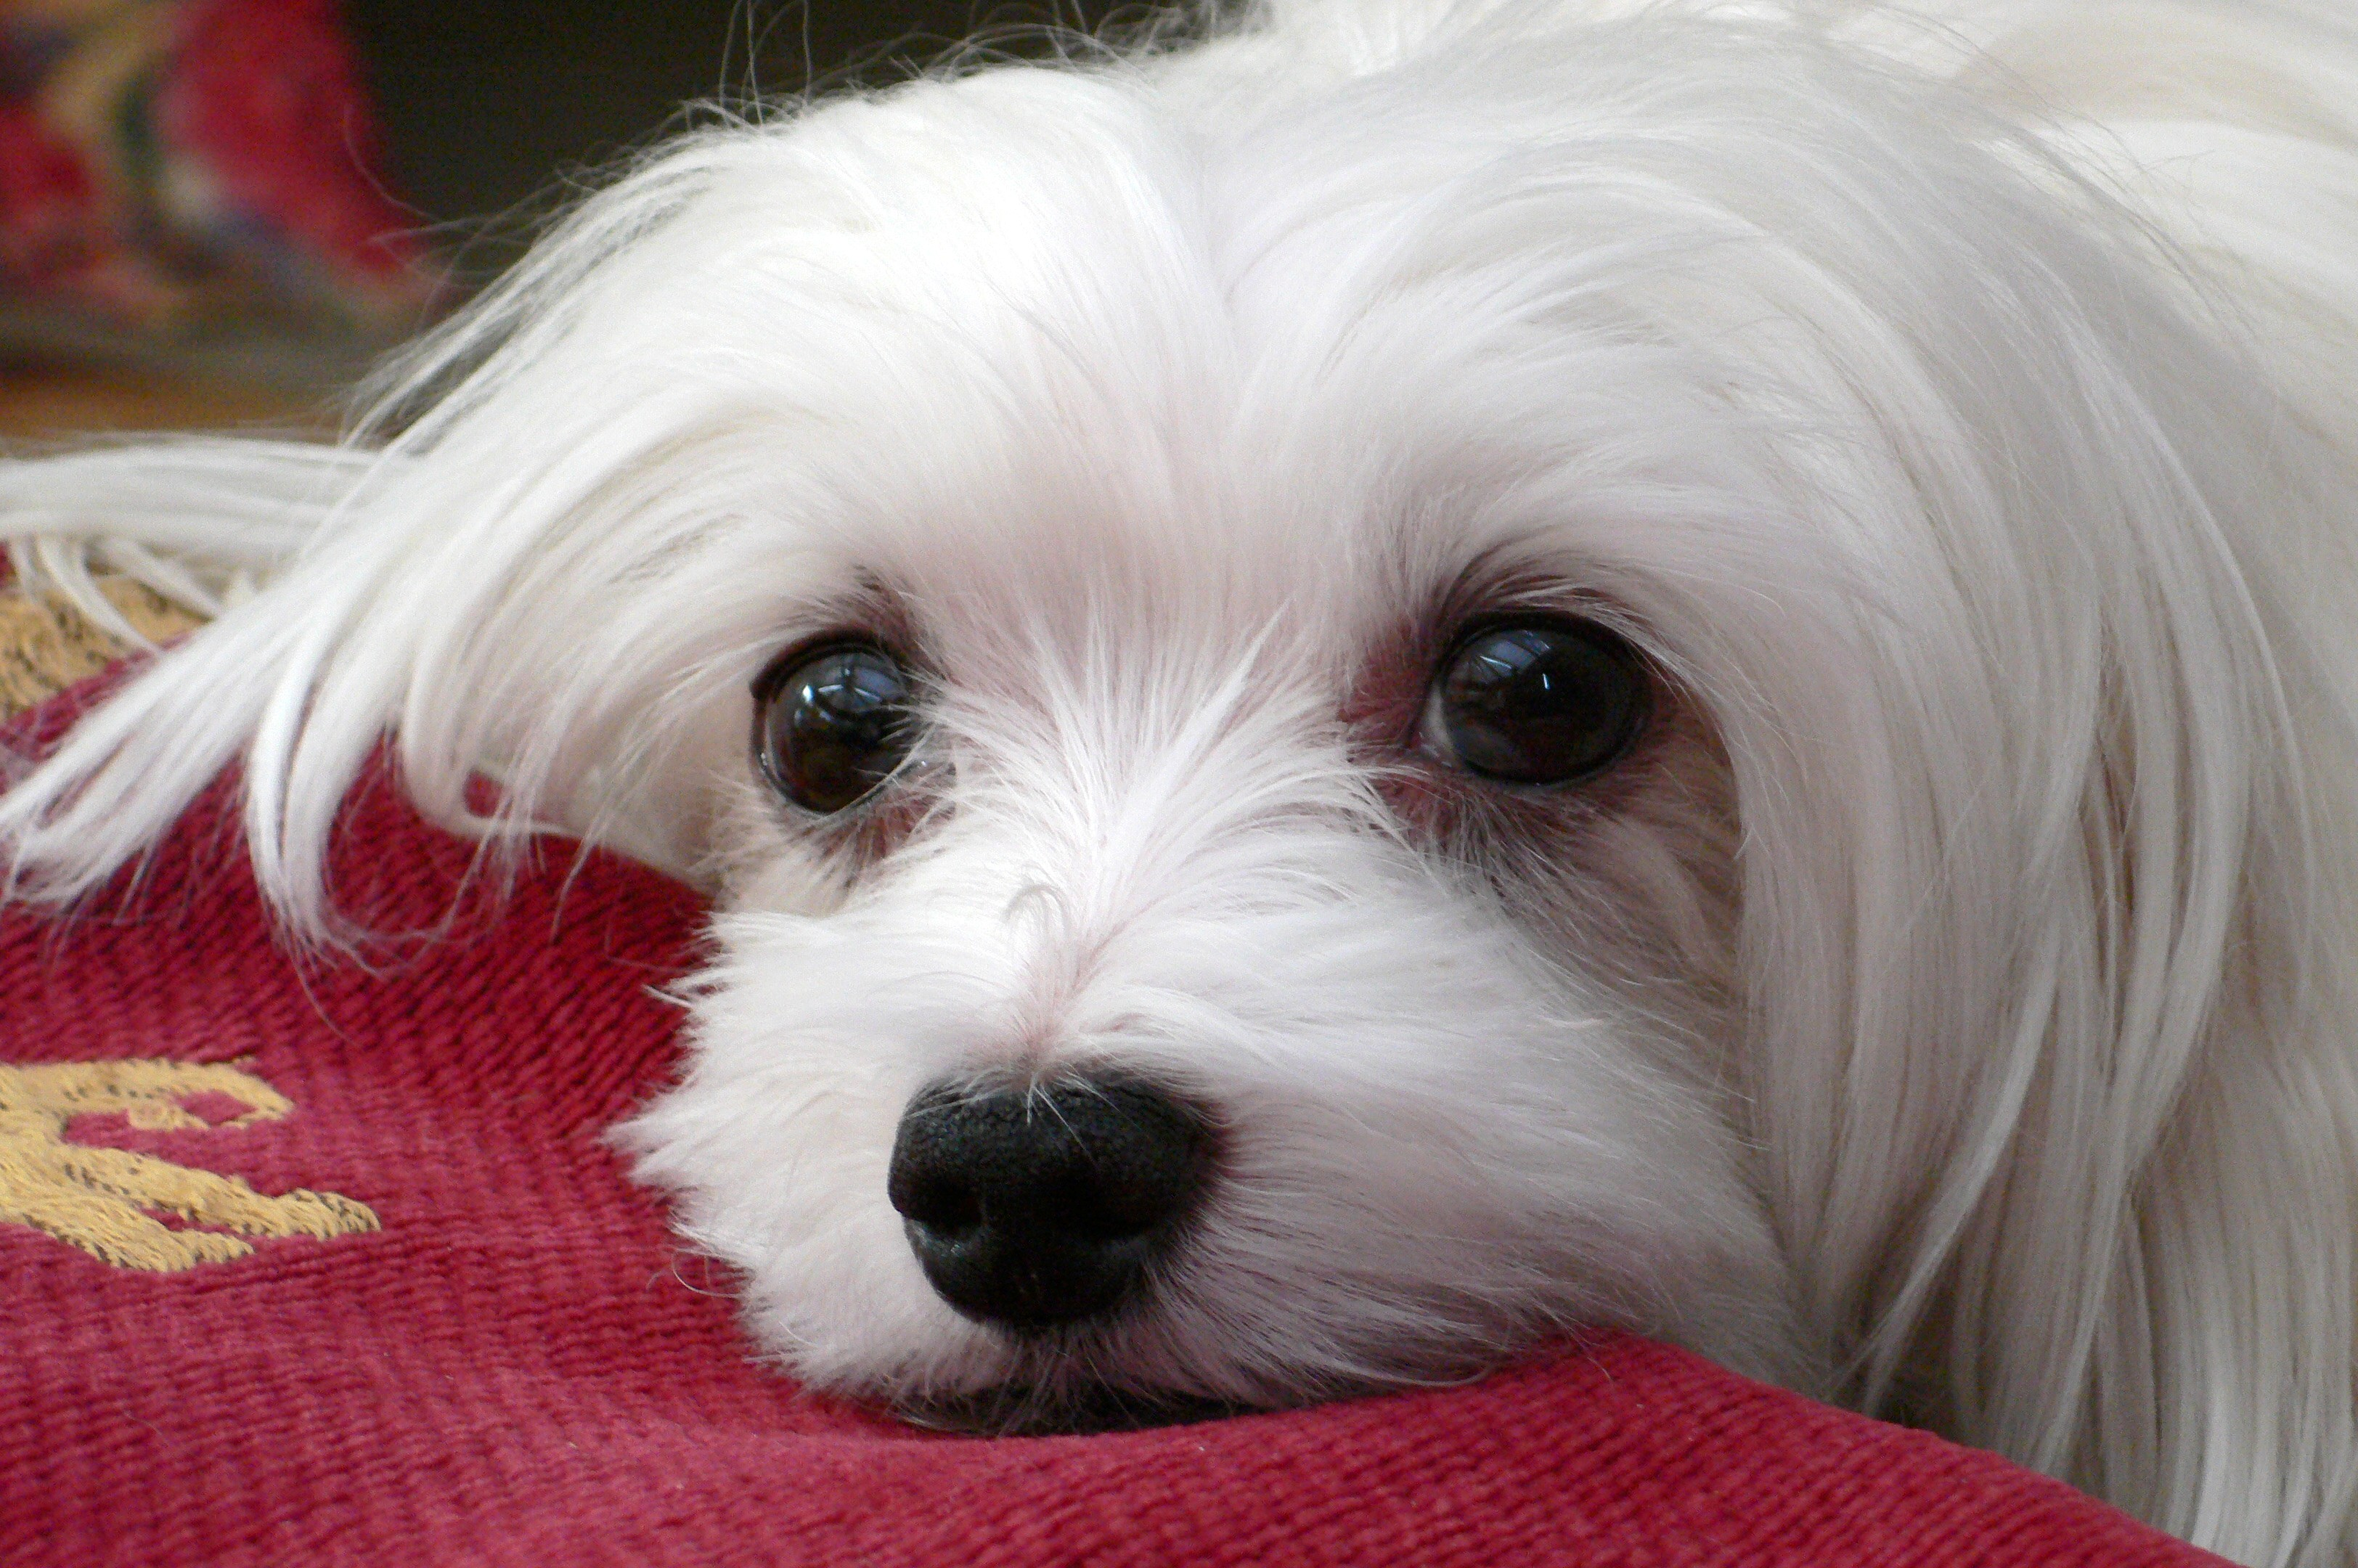 Maltese Dog Picture #1699   Pet Gallery   PetPeoplesPlace.com